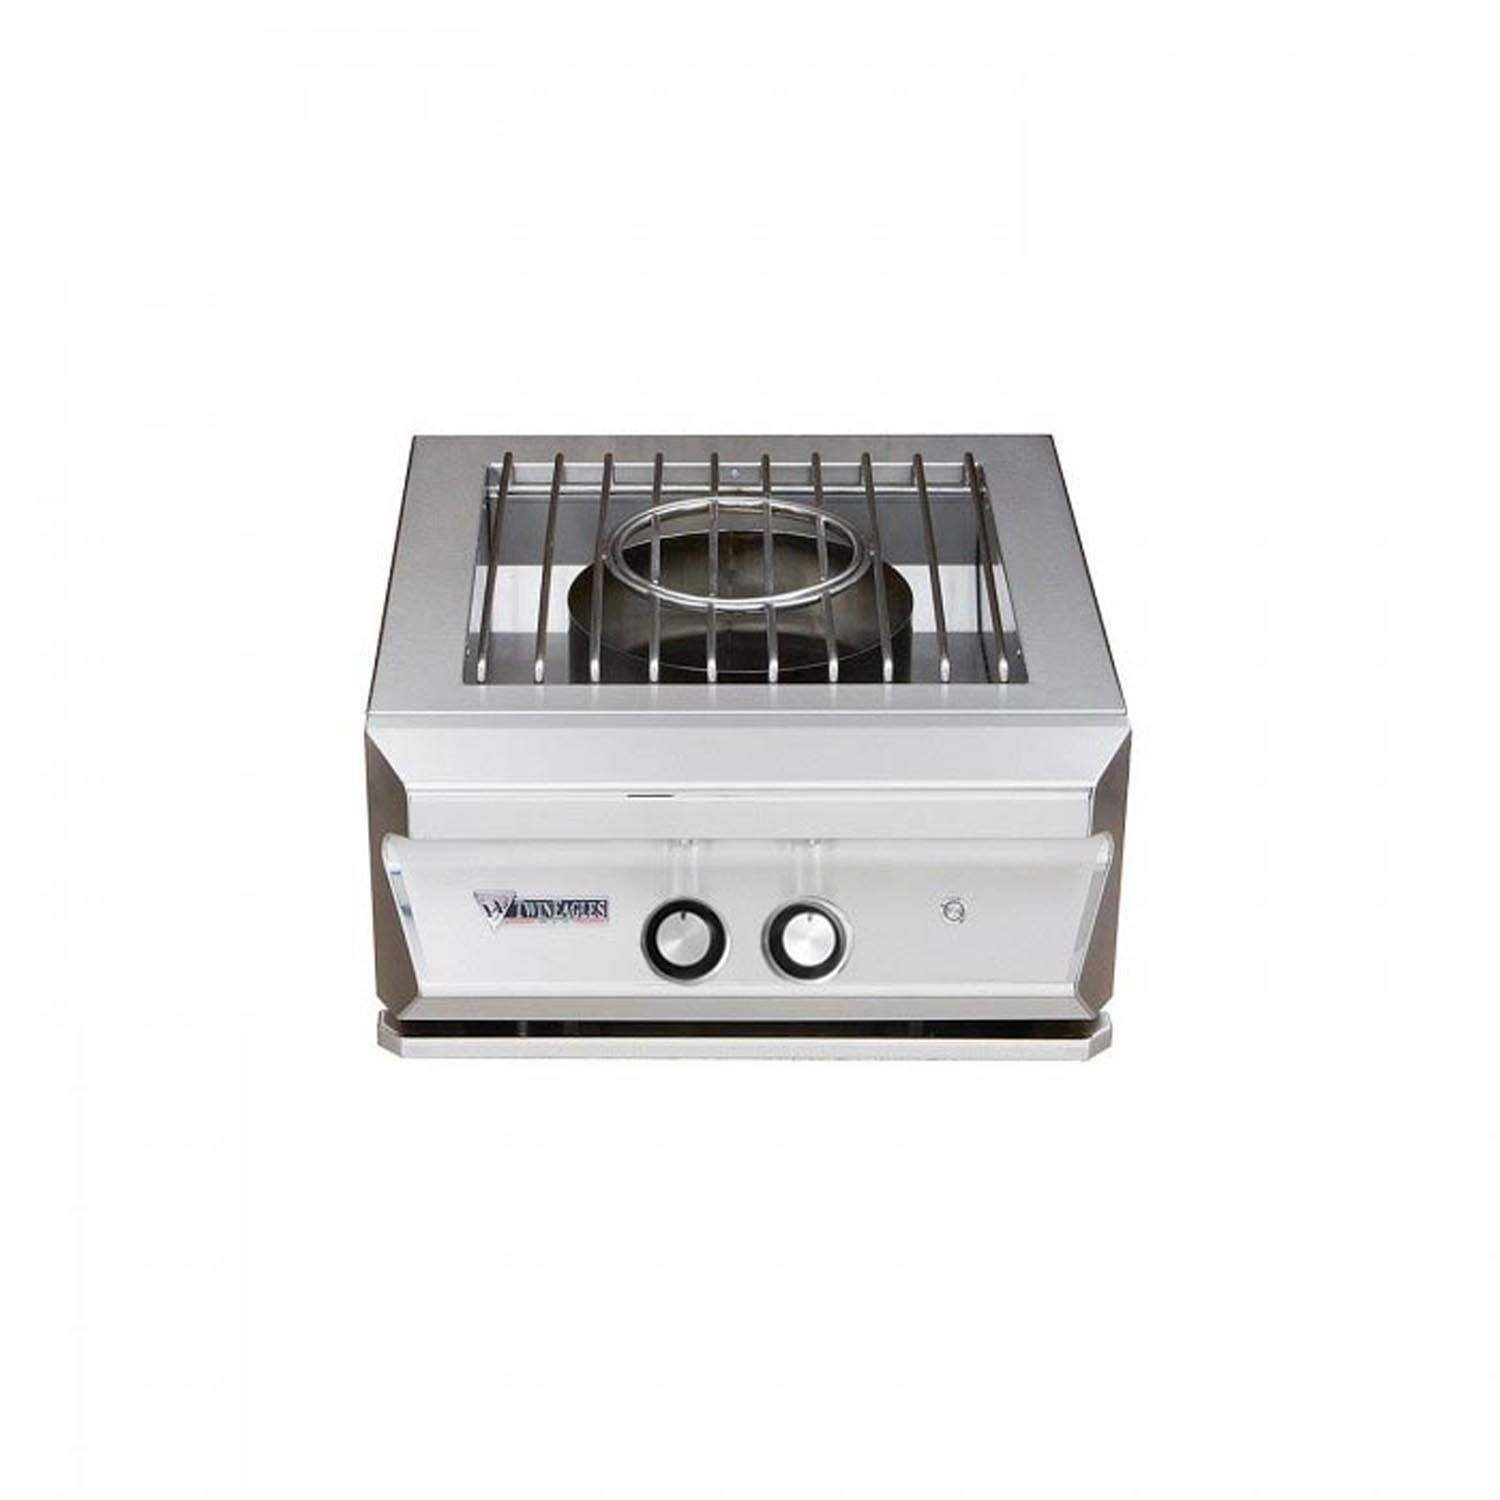 Twin Eagles TEPB24-CL 24 Inch Built-In Propane Gas Power Burner